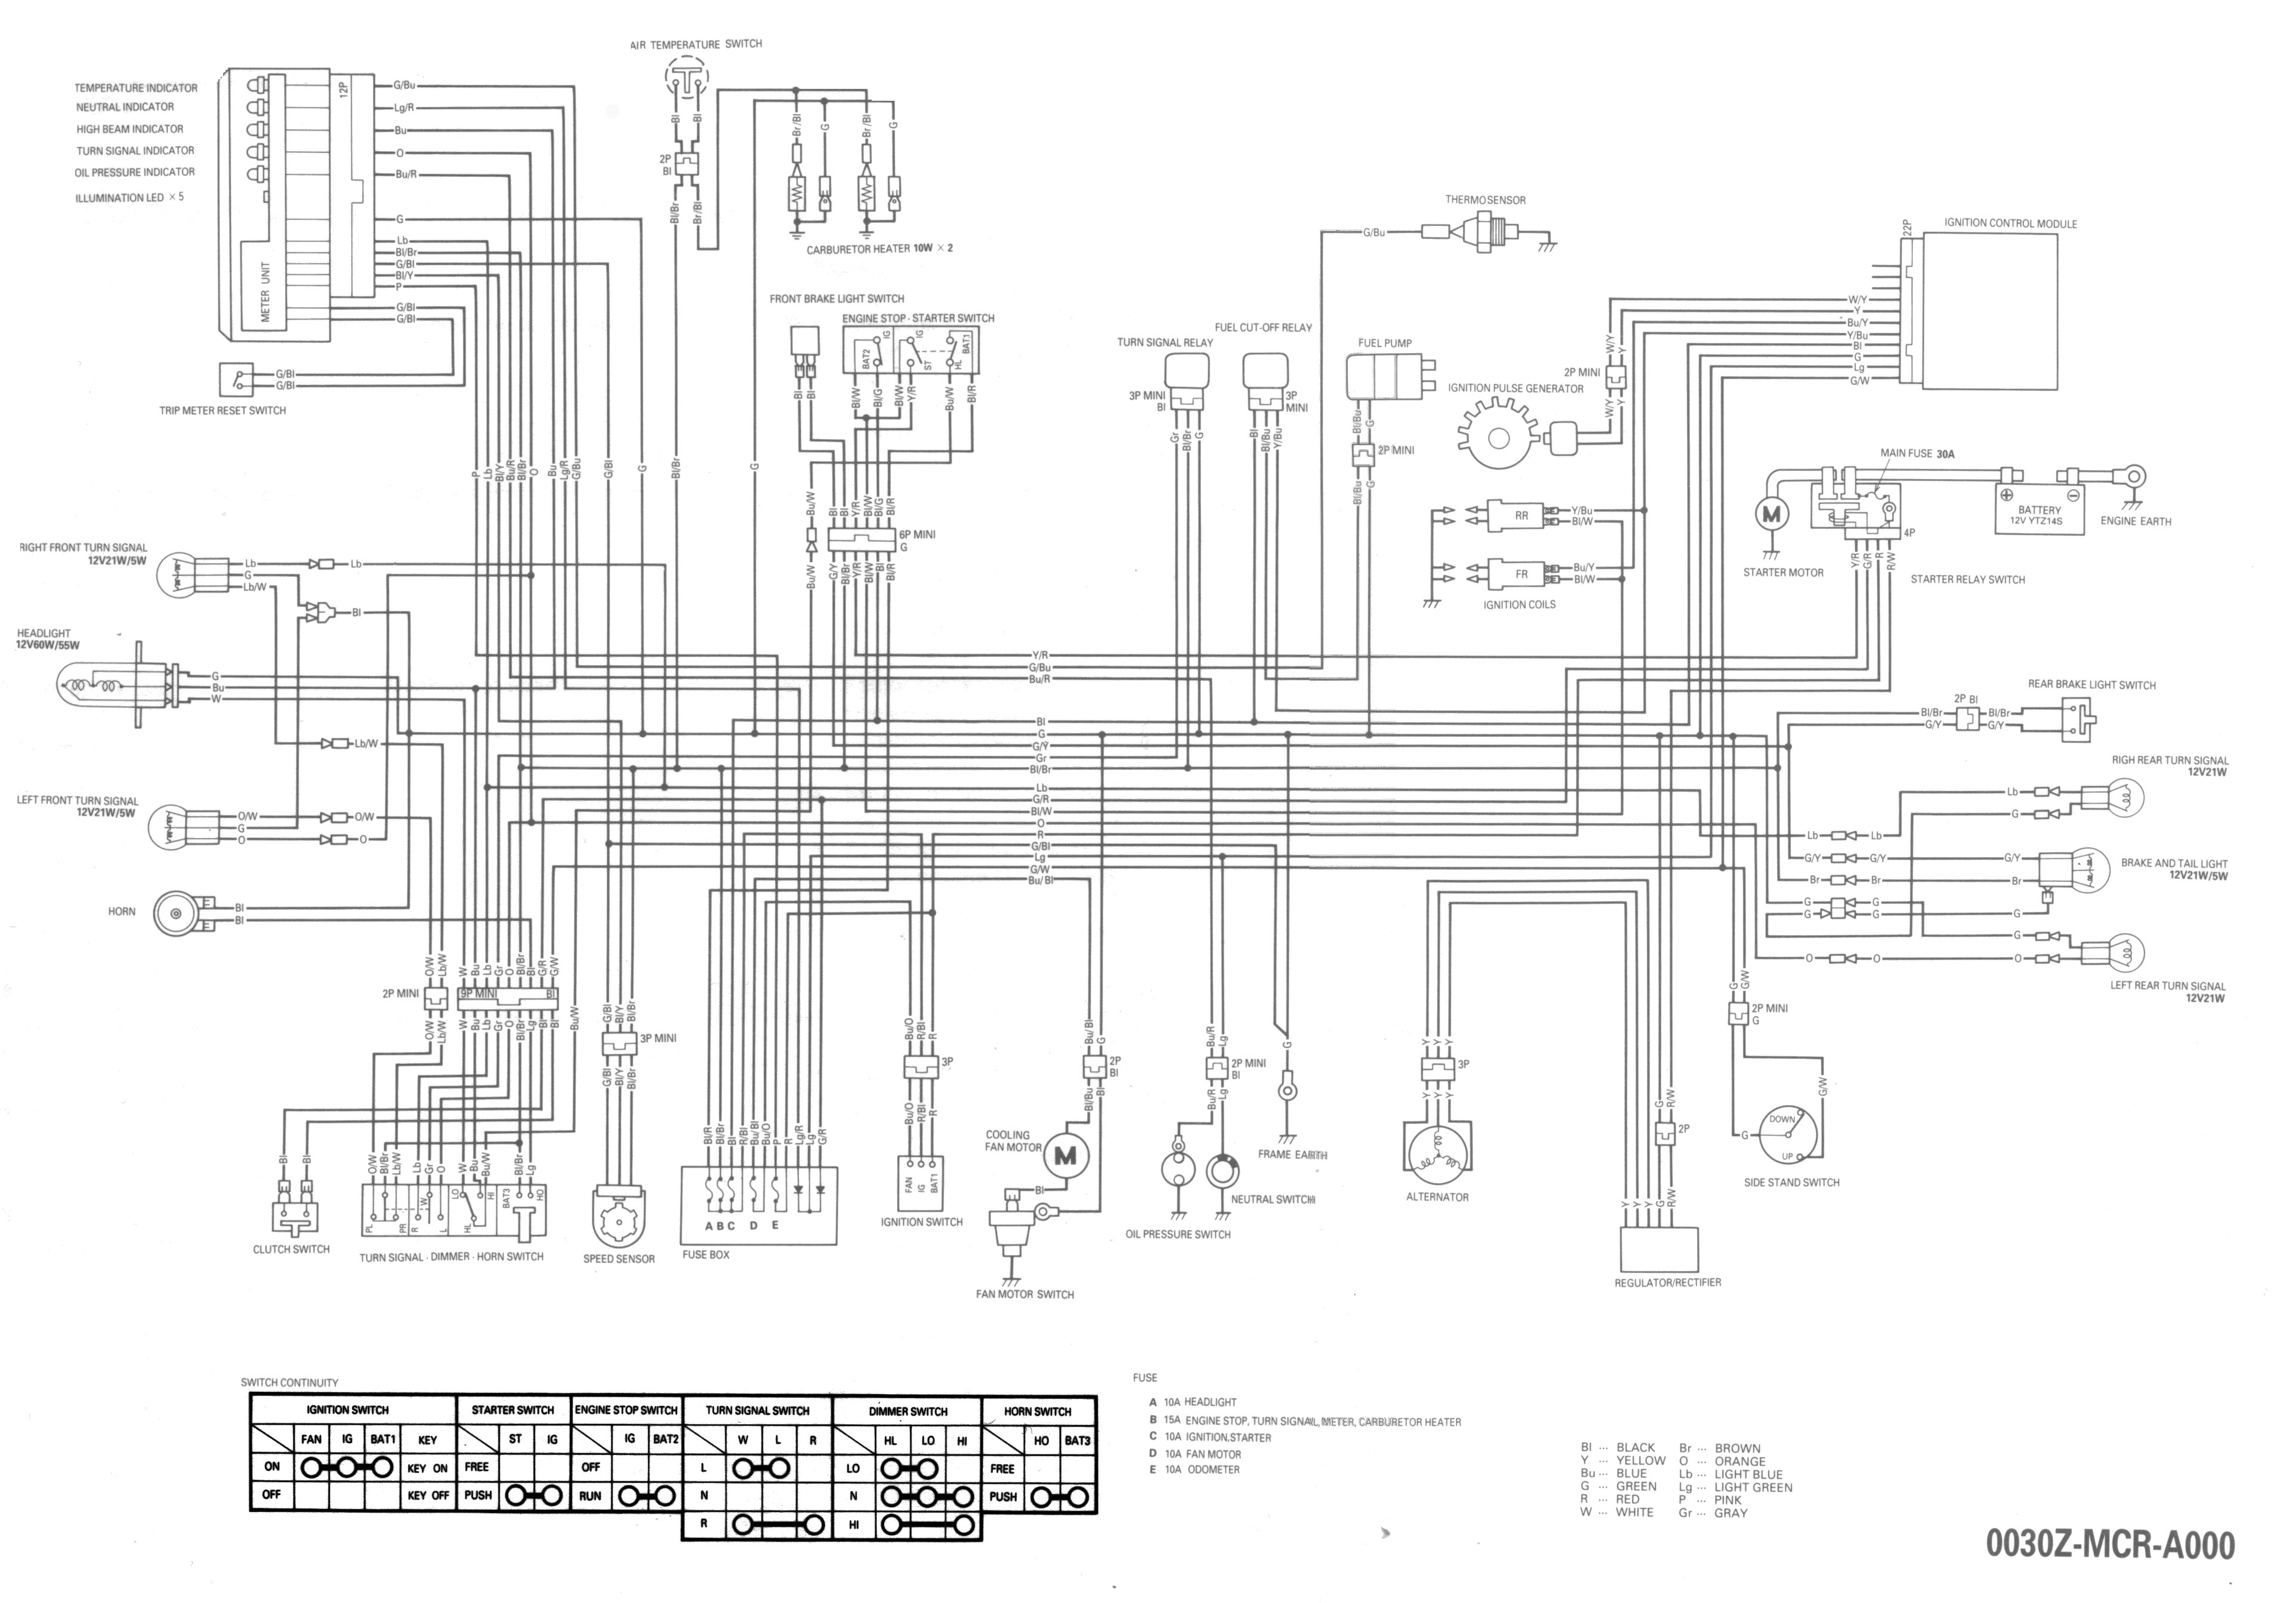 VT750wiring3 untitled document